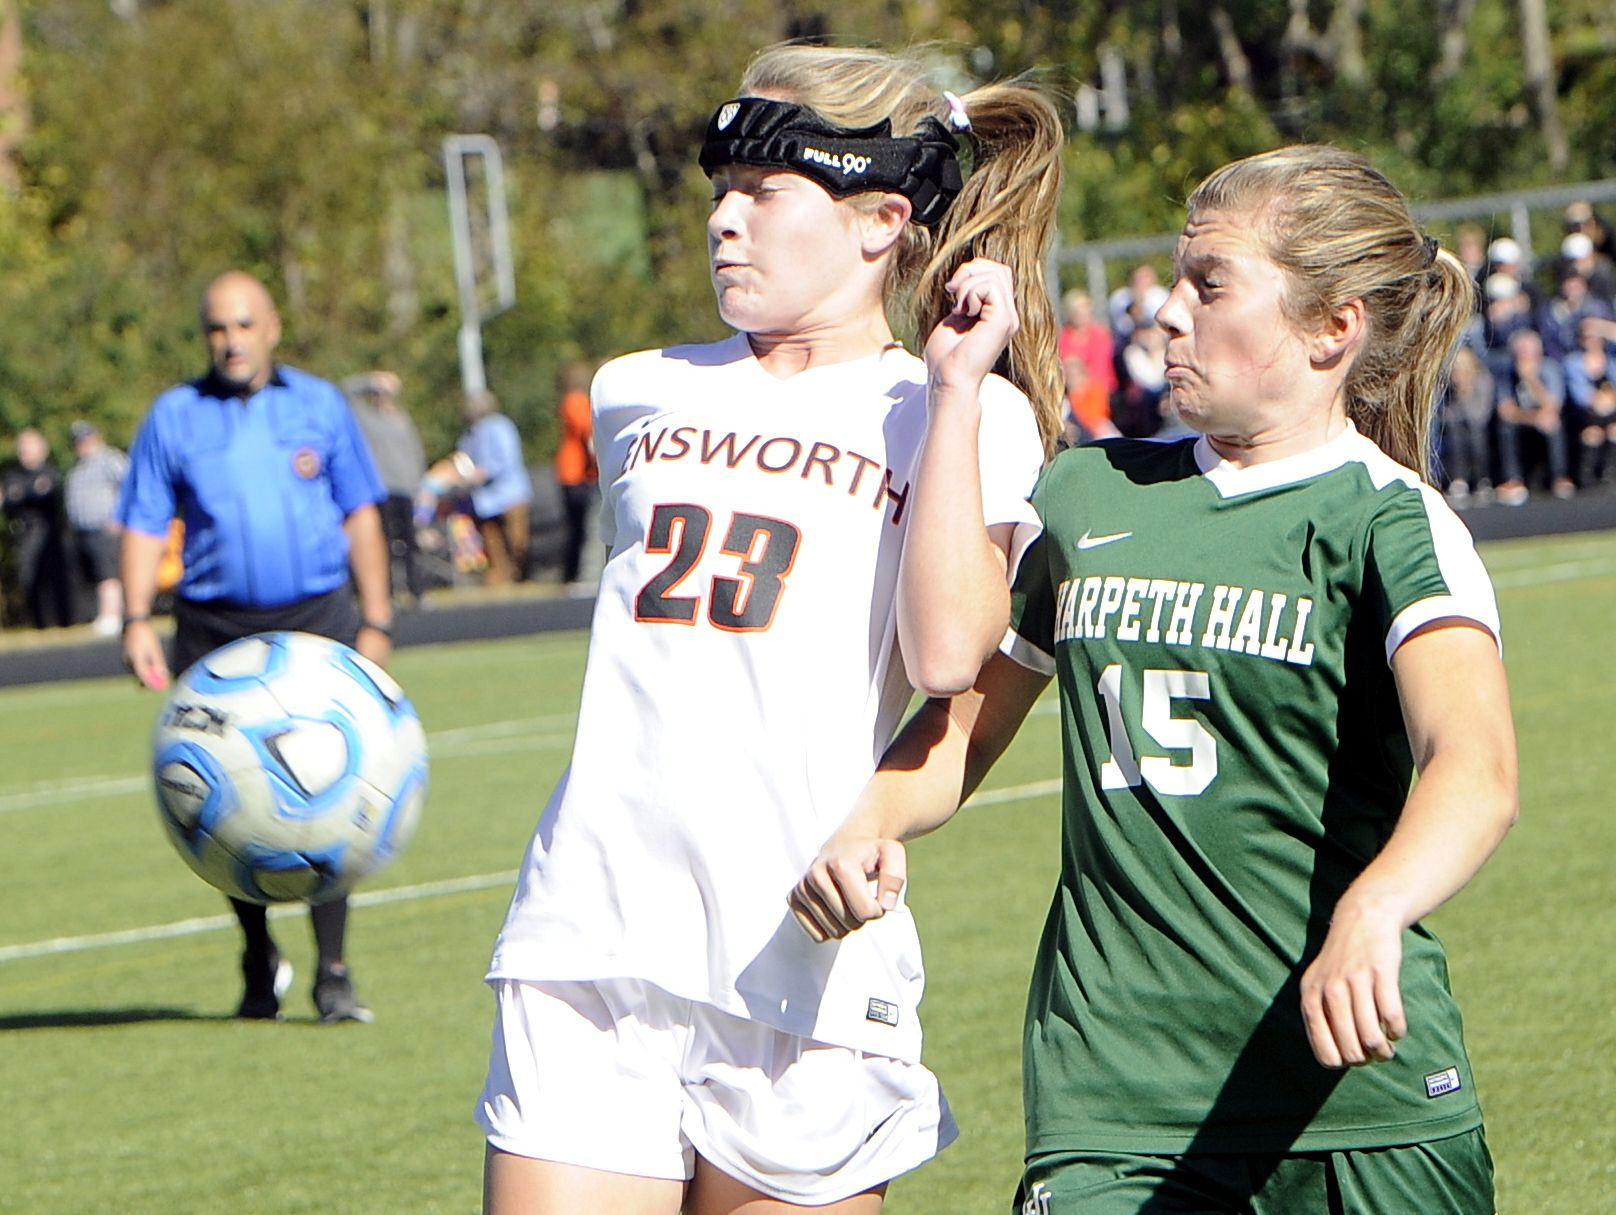 Ensworth sophomore Hailey Braemer and Harpeth Hall senior Lauren Stringfield play a bouncing ball during first-half action on Oct. 22, 2016.